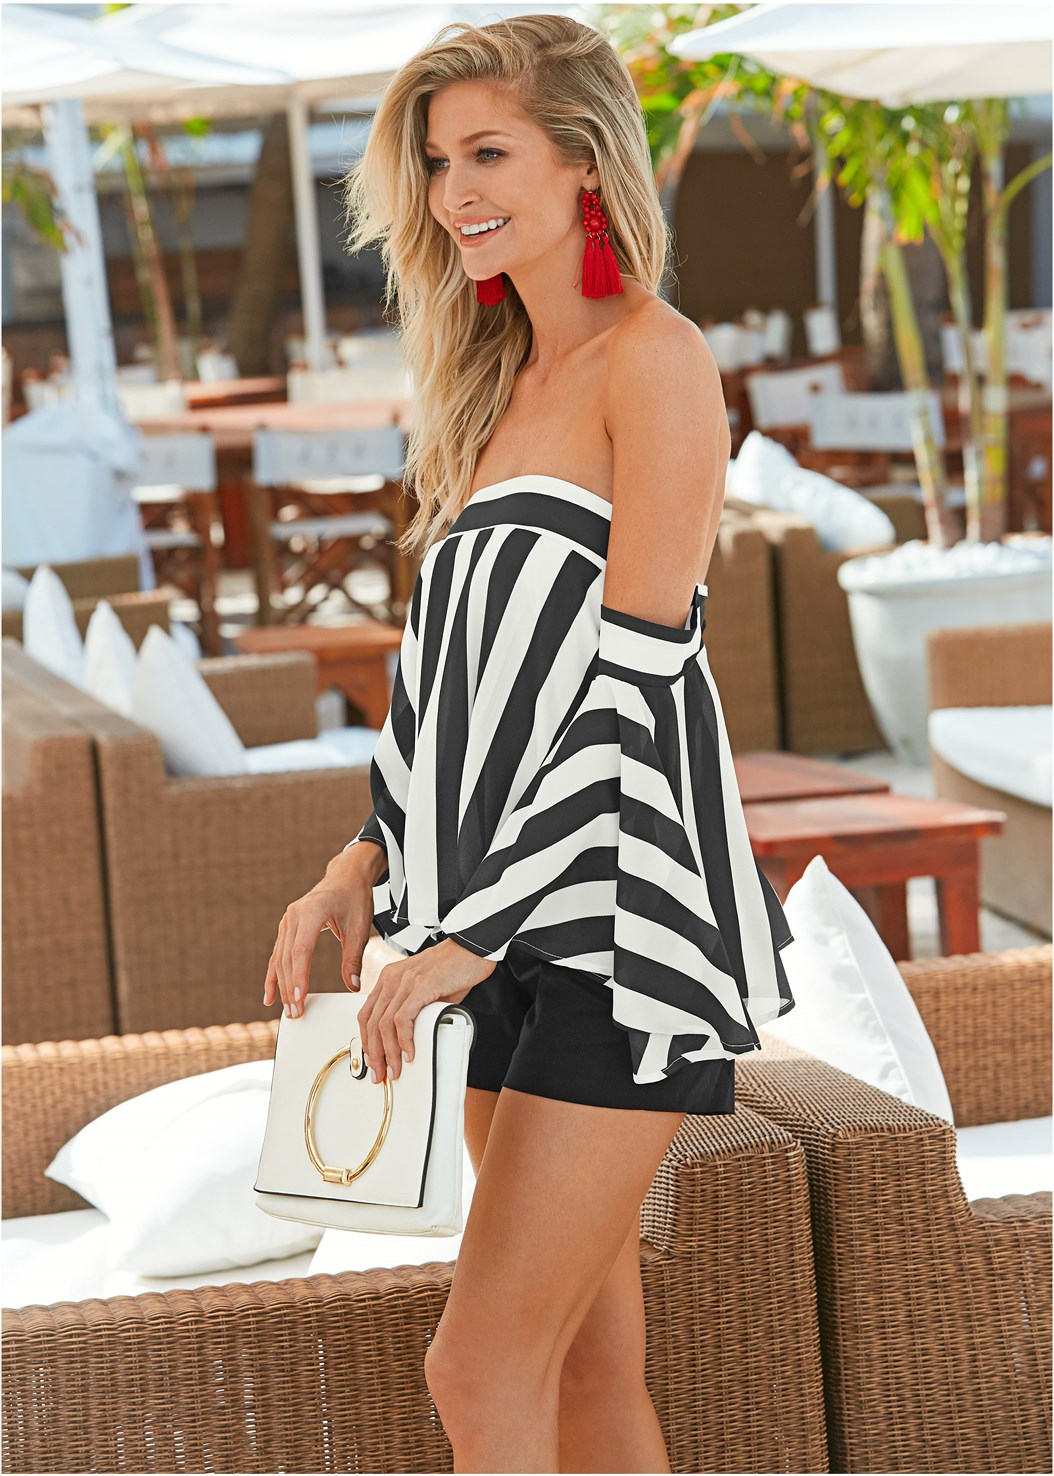 Stripe Bell Sleeve Top,Mid Rise Slimming Stretch Jeggings,Solid Shorts,High Heel Strappy Sandals